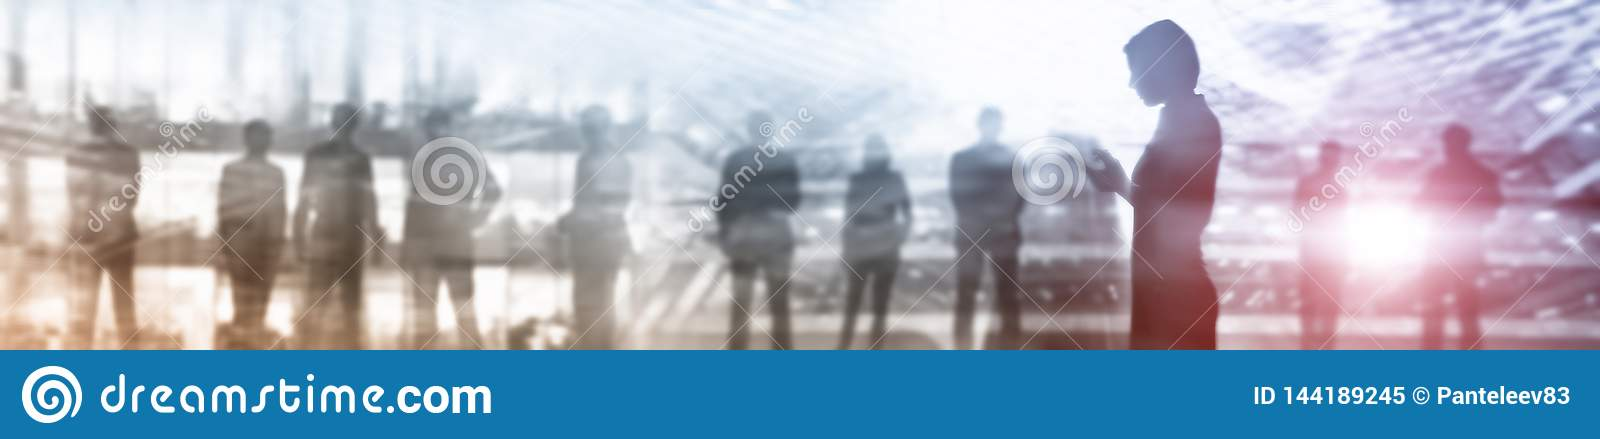 Business Website Banner Header. Industry background mixed media. People silhouettes. Abstract concept.